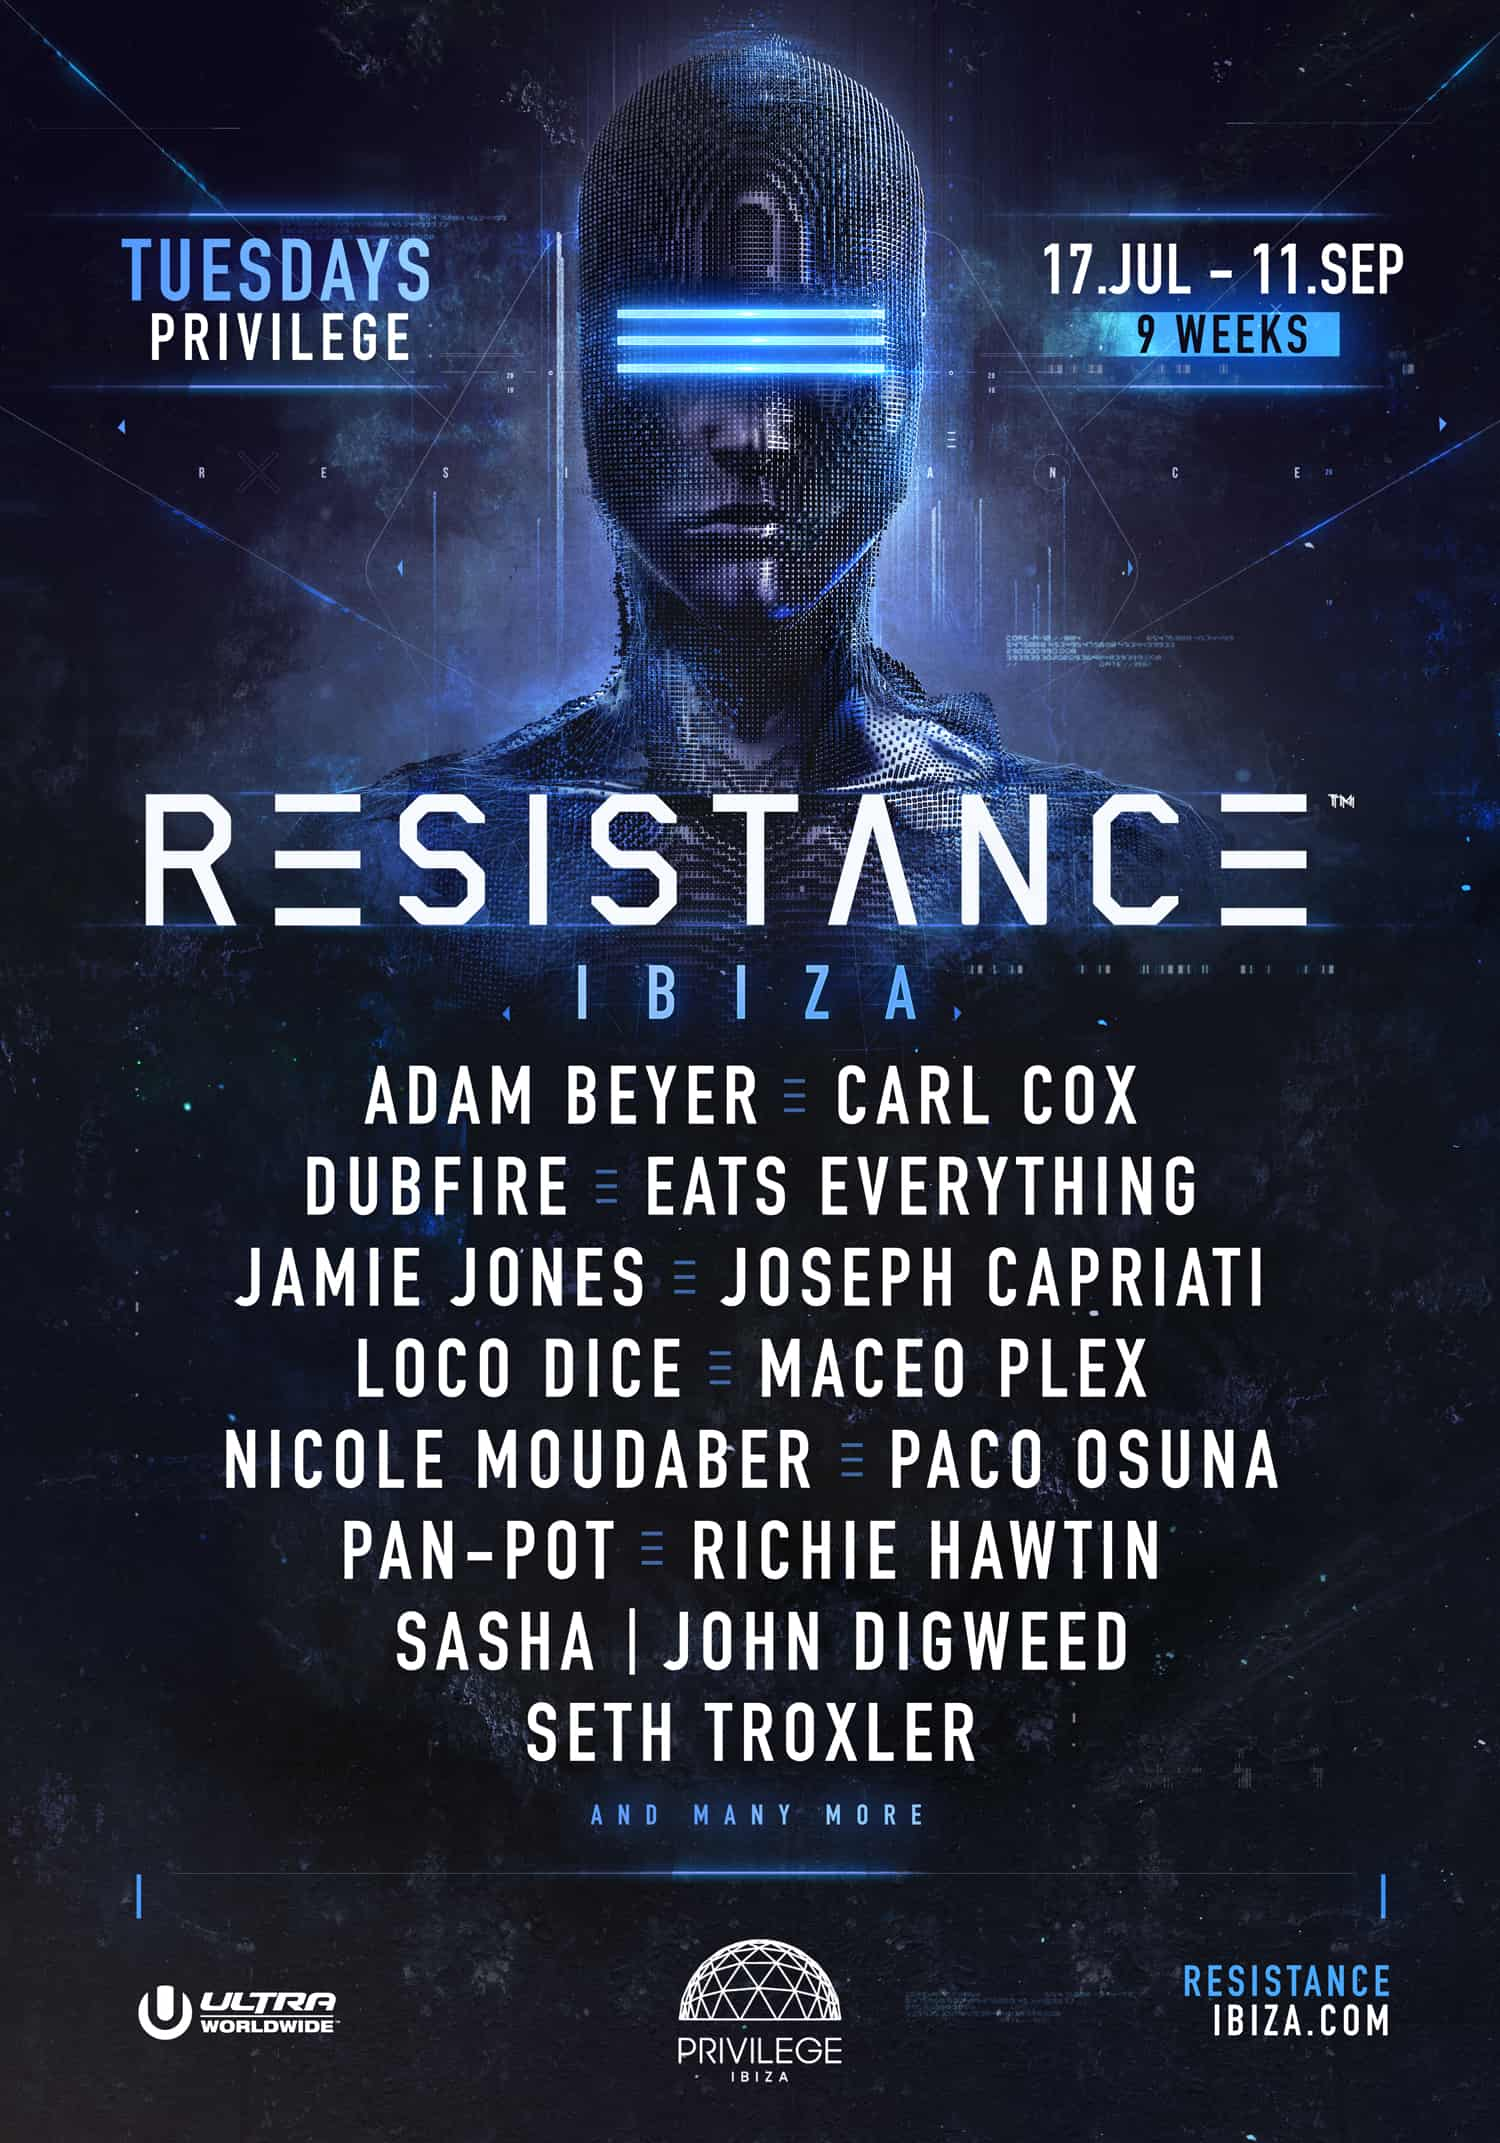 RESISTANCE Ibiza has just announced the 2018 headliners set to play Privilege this summer